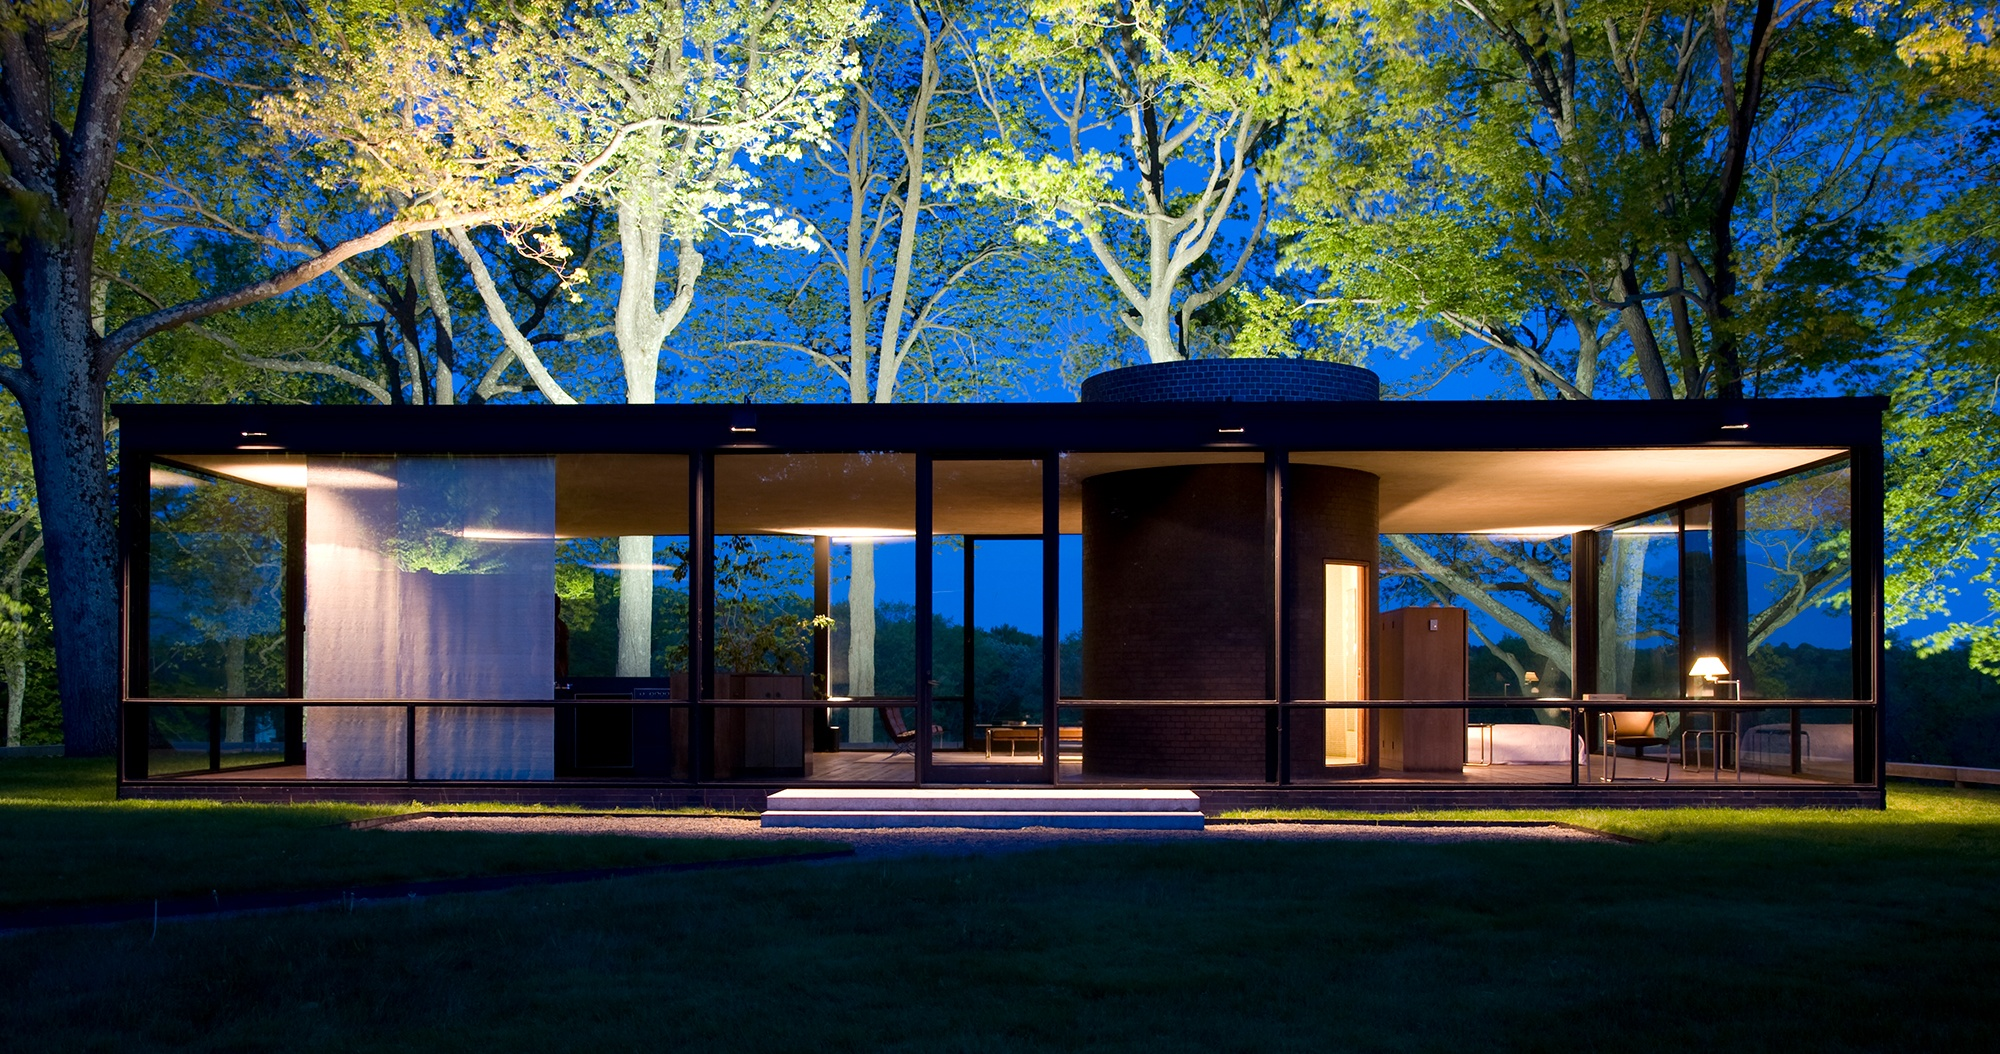 on the move hilary lewis named chief curator at philip johnson 39 s glass house. Black Bedroom Furniture Sets. Home Design Ideas